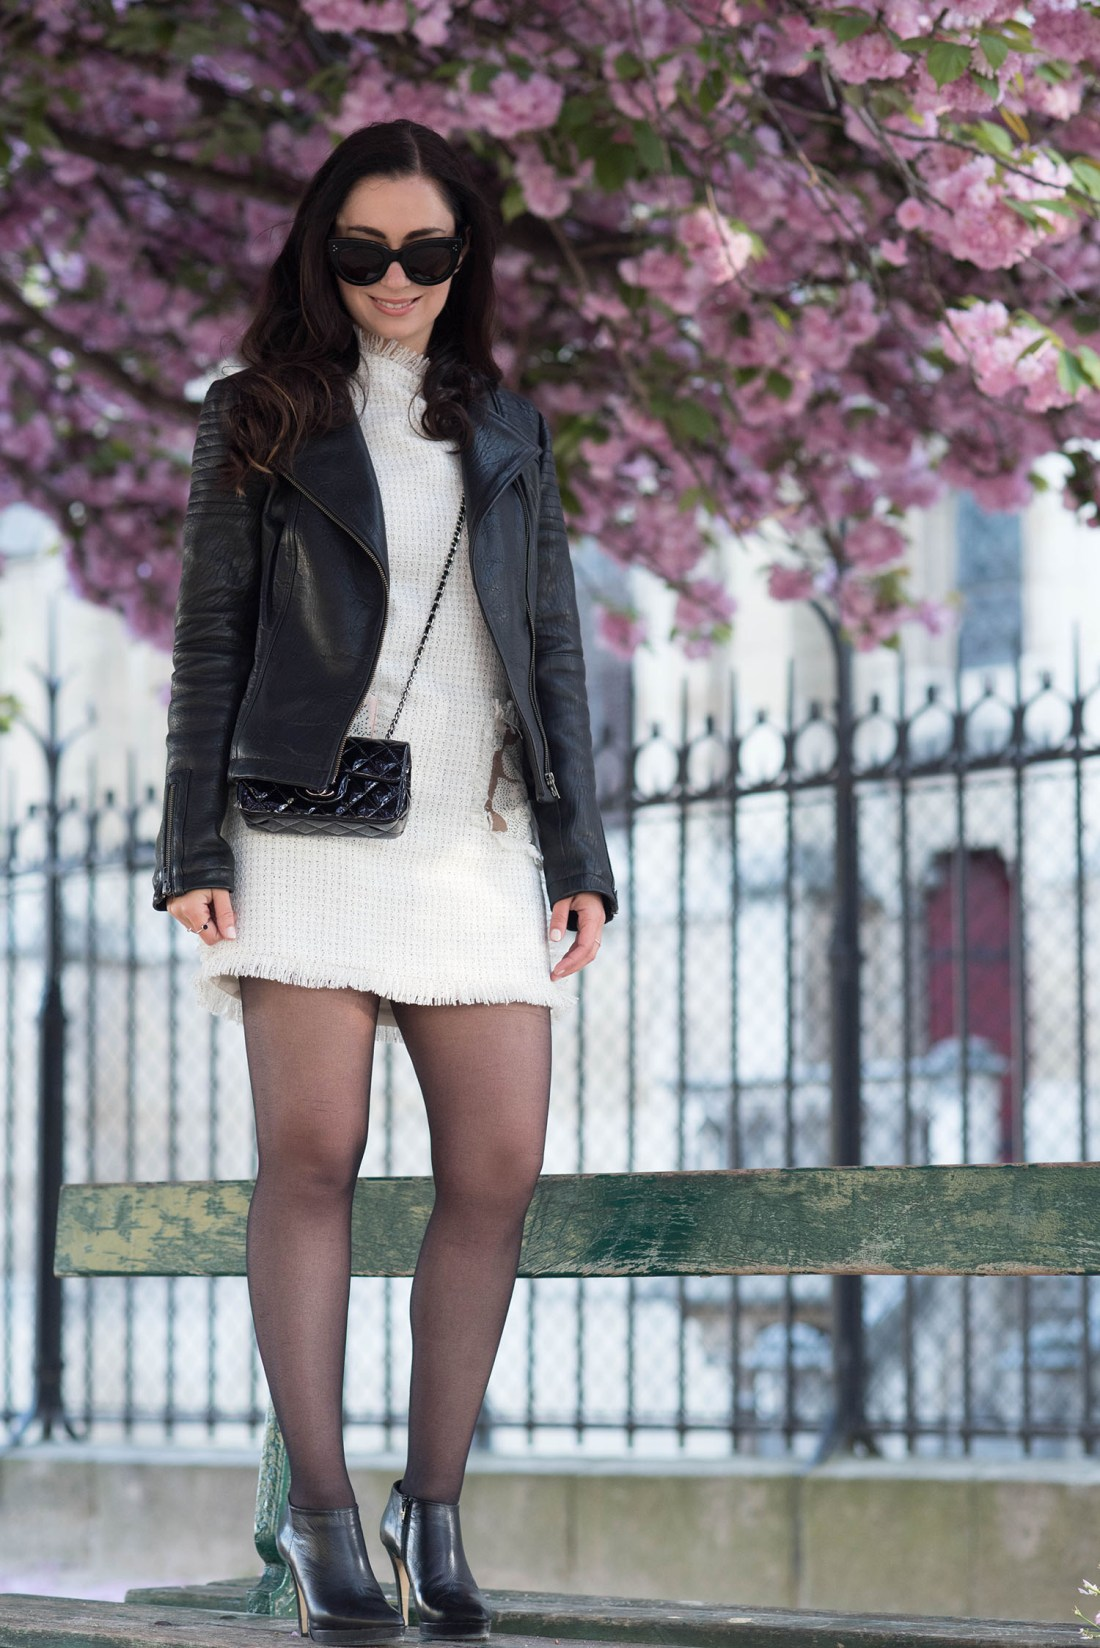 Fashion blogger Cee Fardoe of Coco & Vera stands on a bench wearing a Floriane Fosso dress and Chanel bag